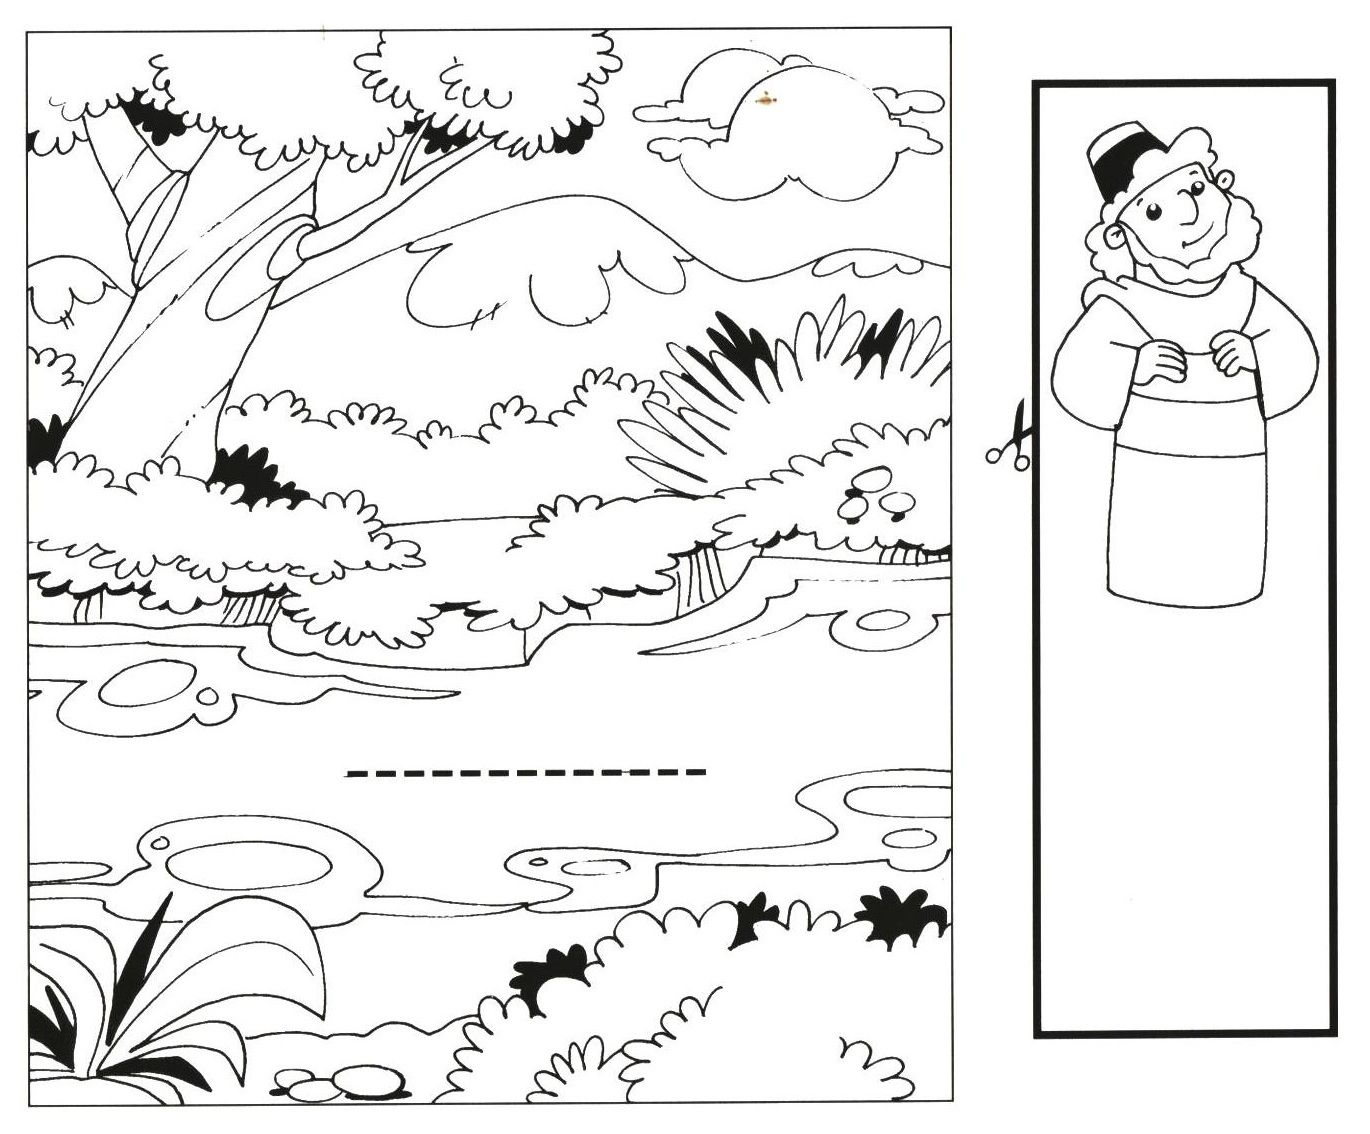 Naaman | Sunday school coloring pages, Coloring pages ...